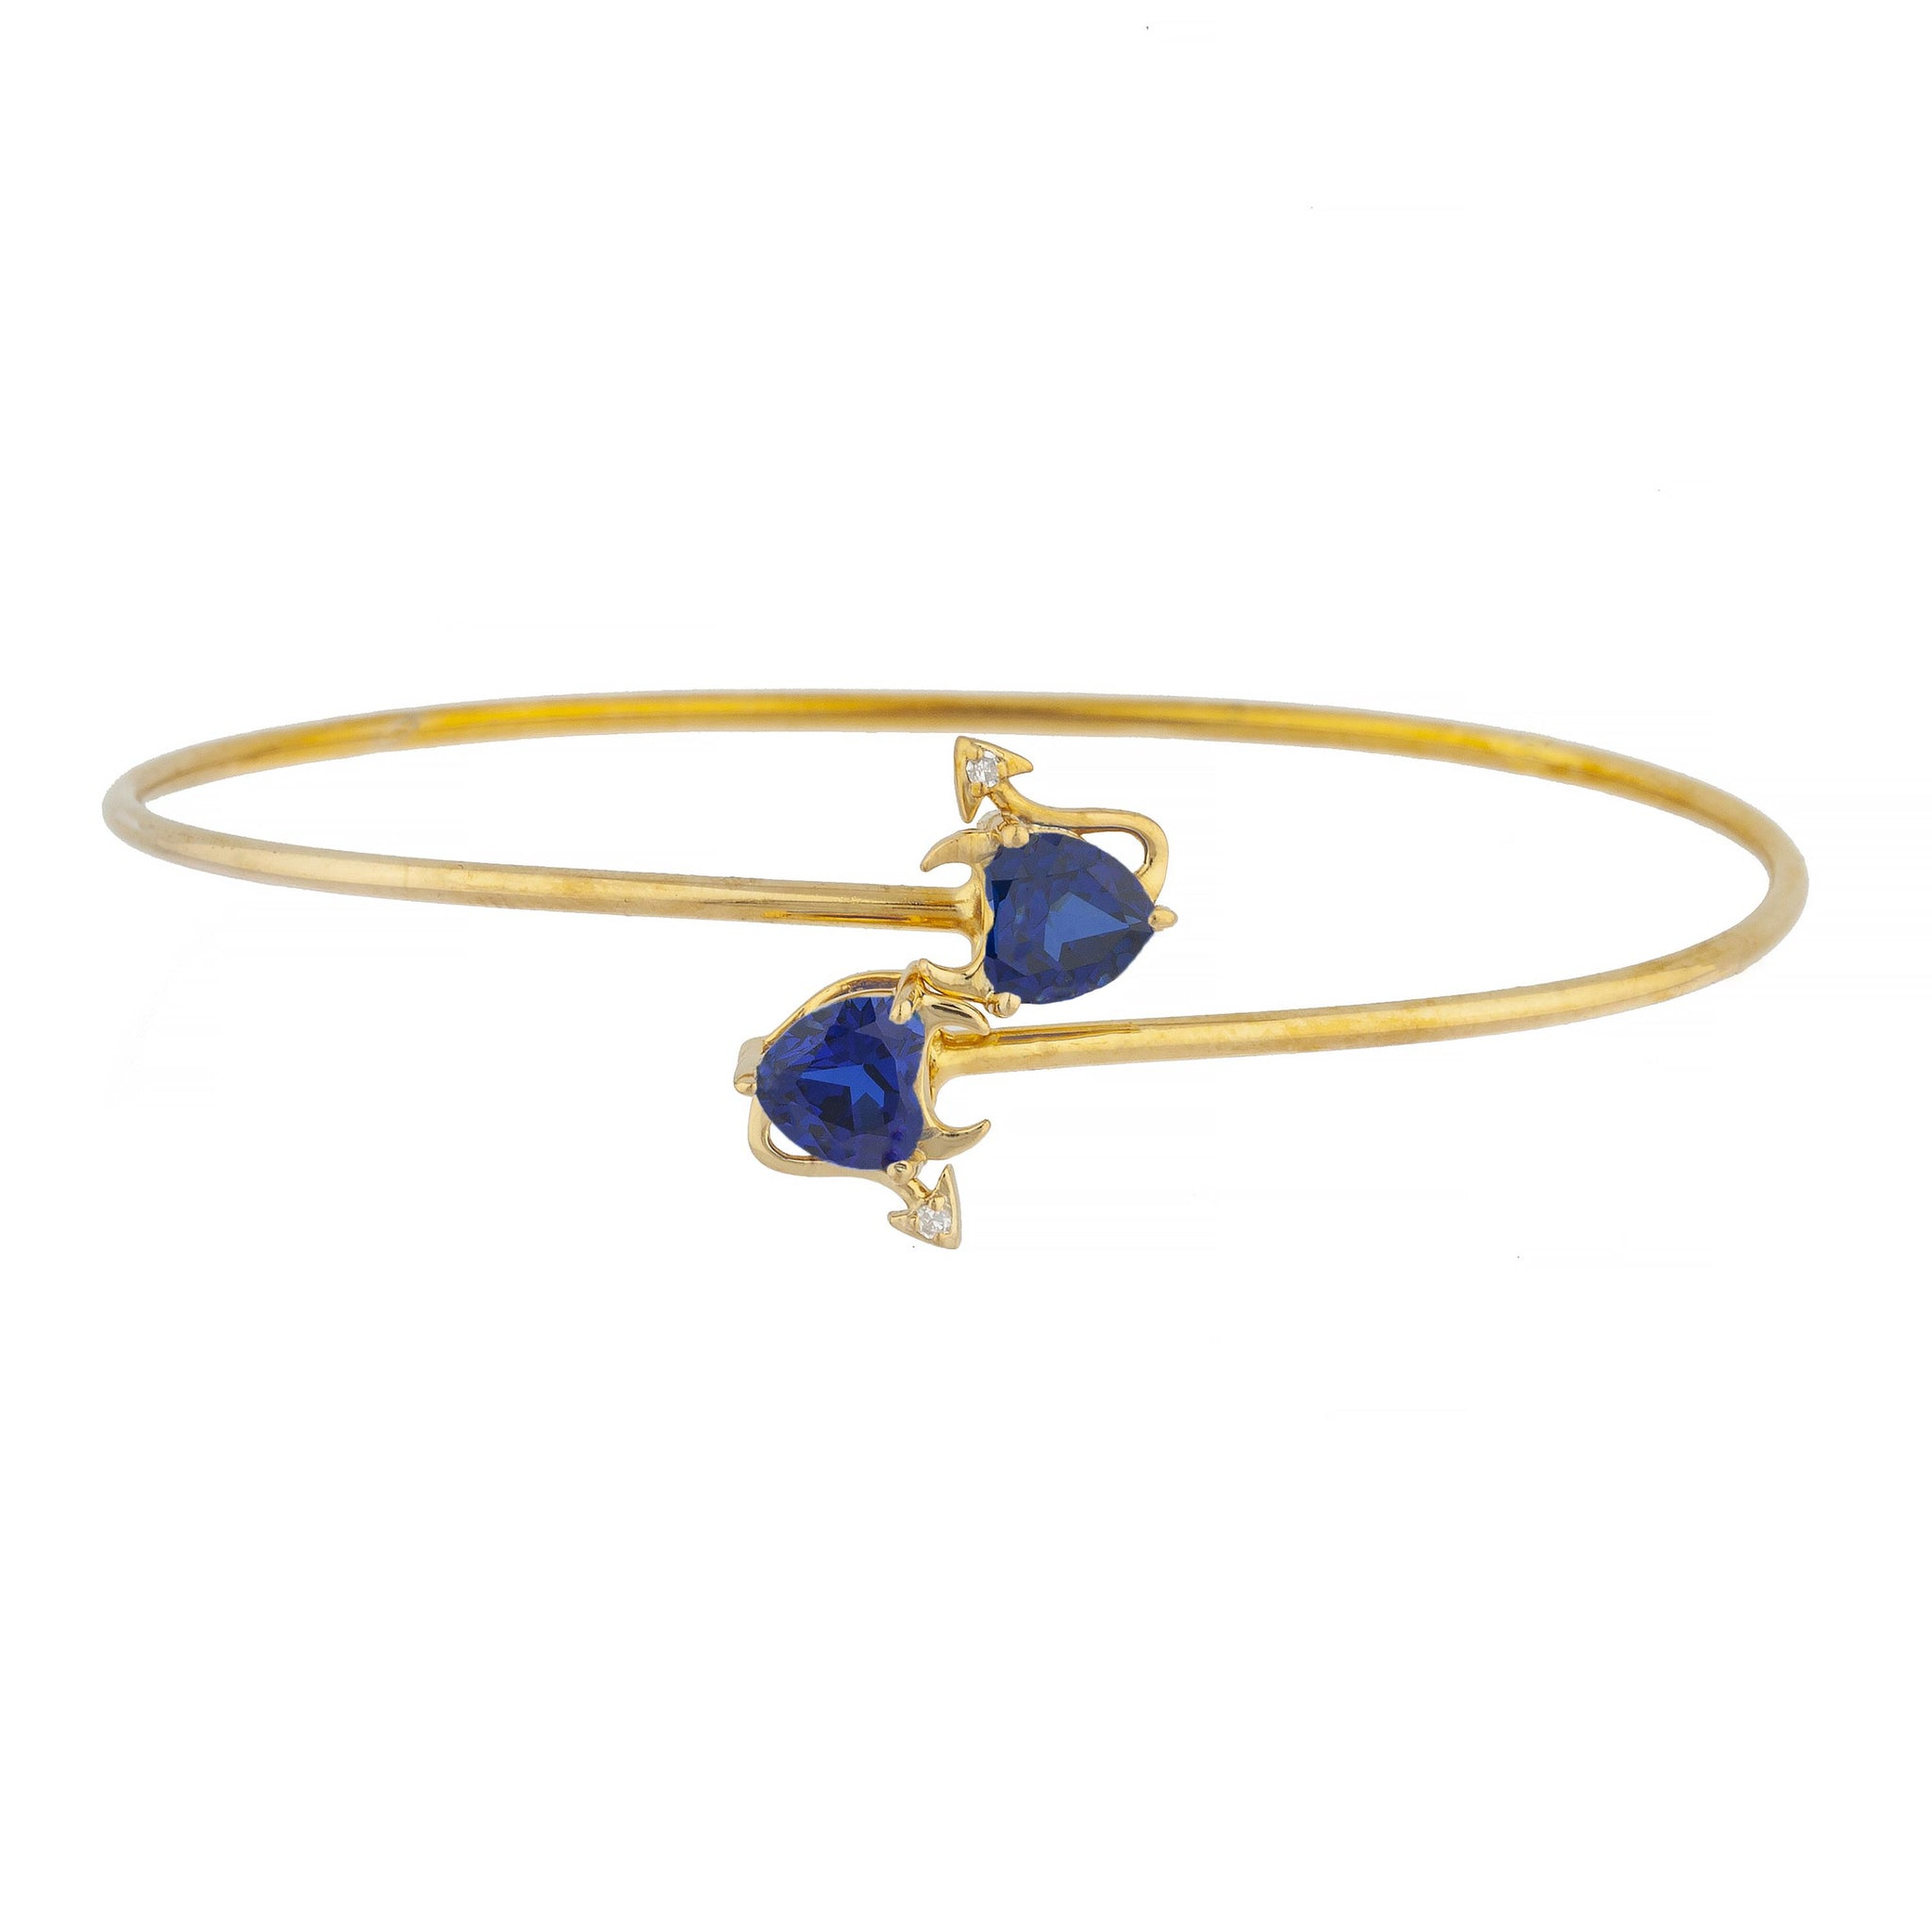 14Kt Gold Blue Sapphire & Diamond Devil Heart Bangle Bracelet